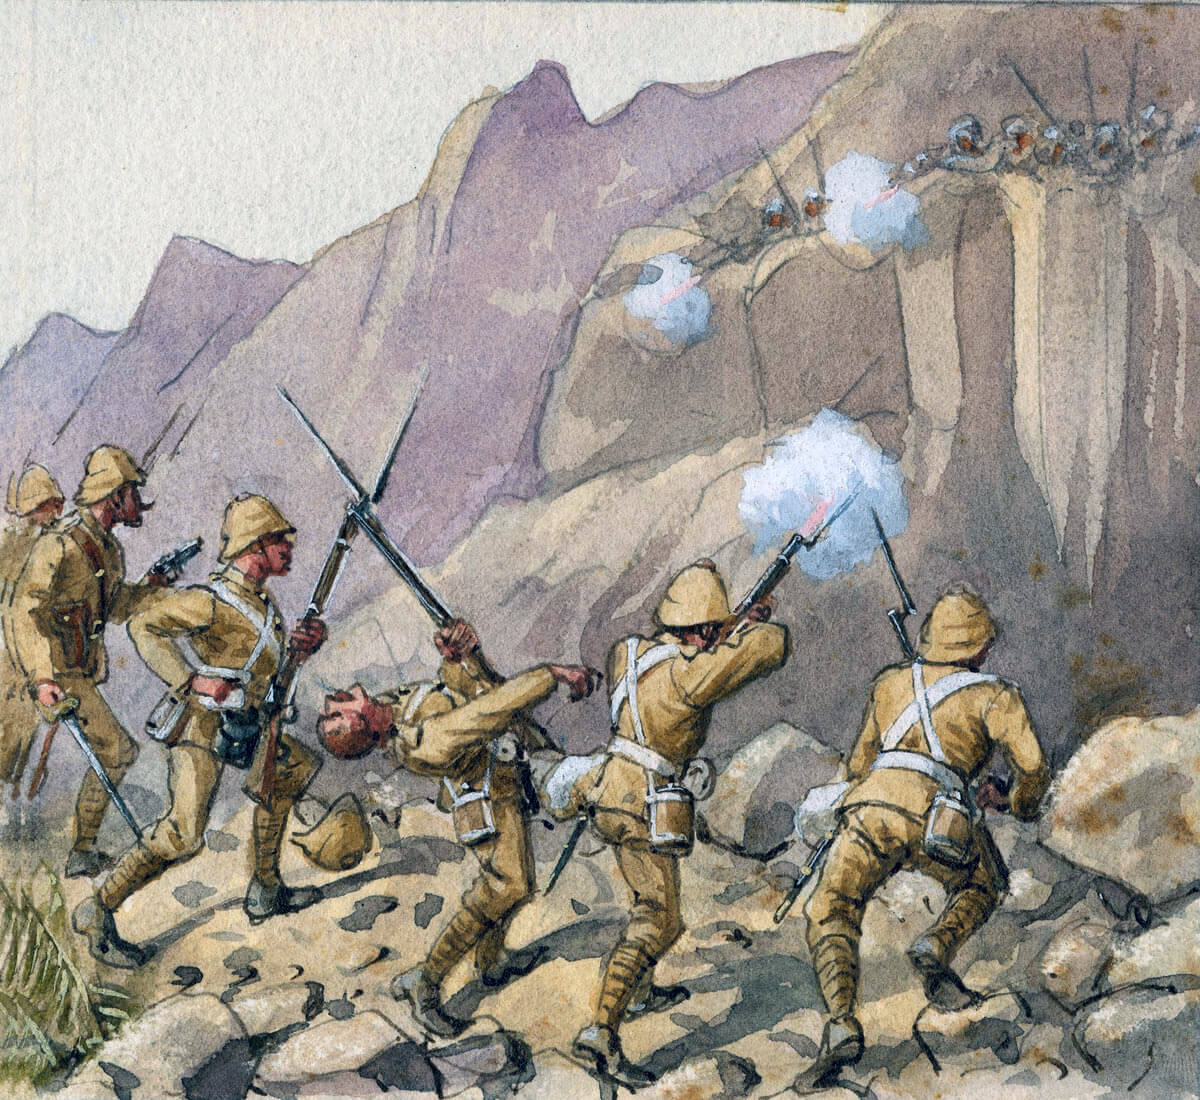 59th Regiment at the Battle of Ahmed Khel on 19th April 1880 in the Second Afghan War